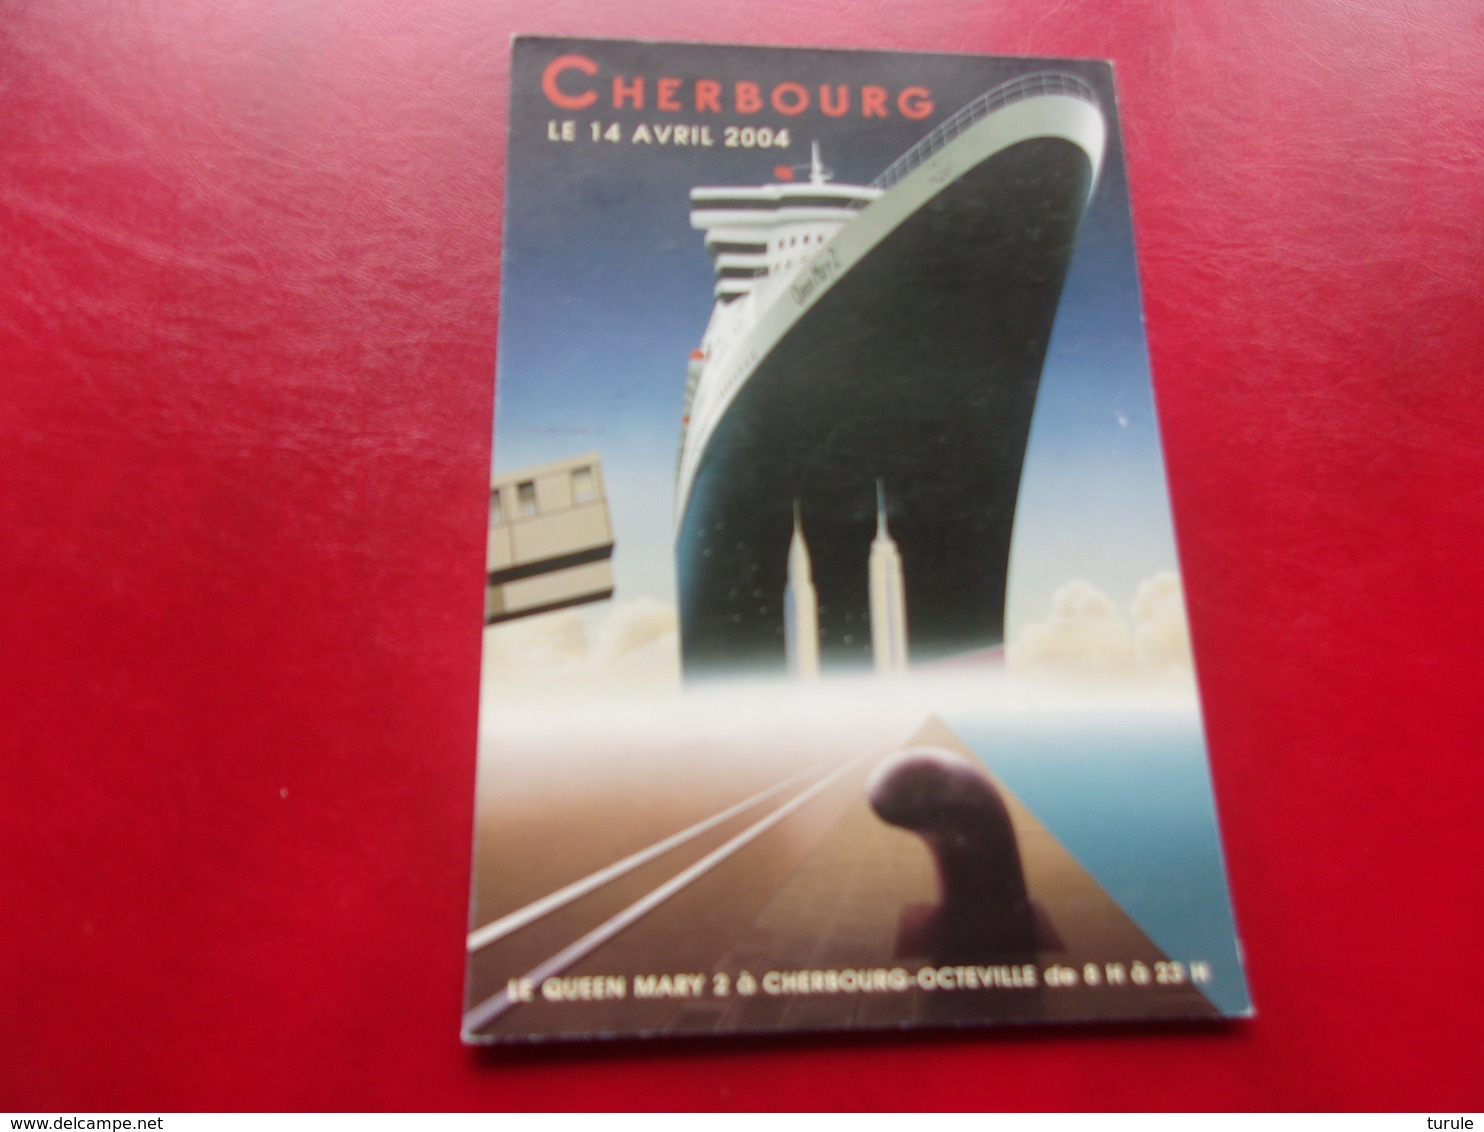 FRANCE (2004) LE QUEEN MARY 2 A CHERBOURG - Maximum Cards